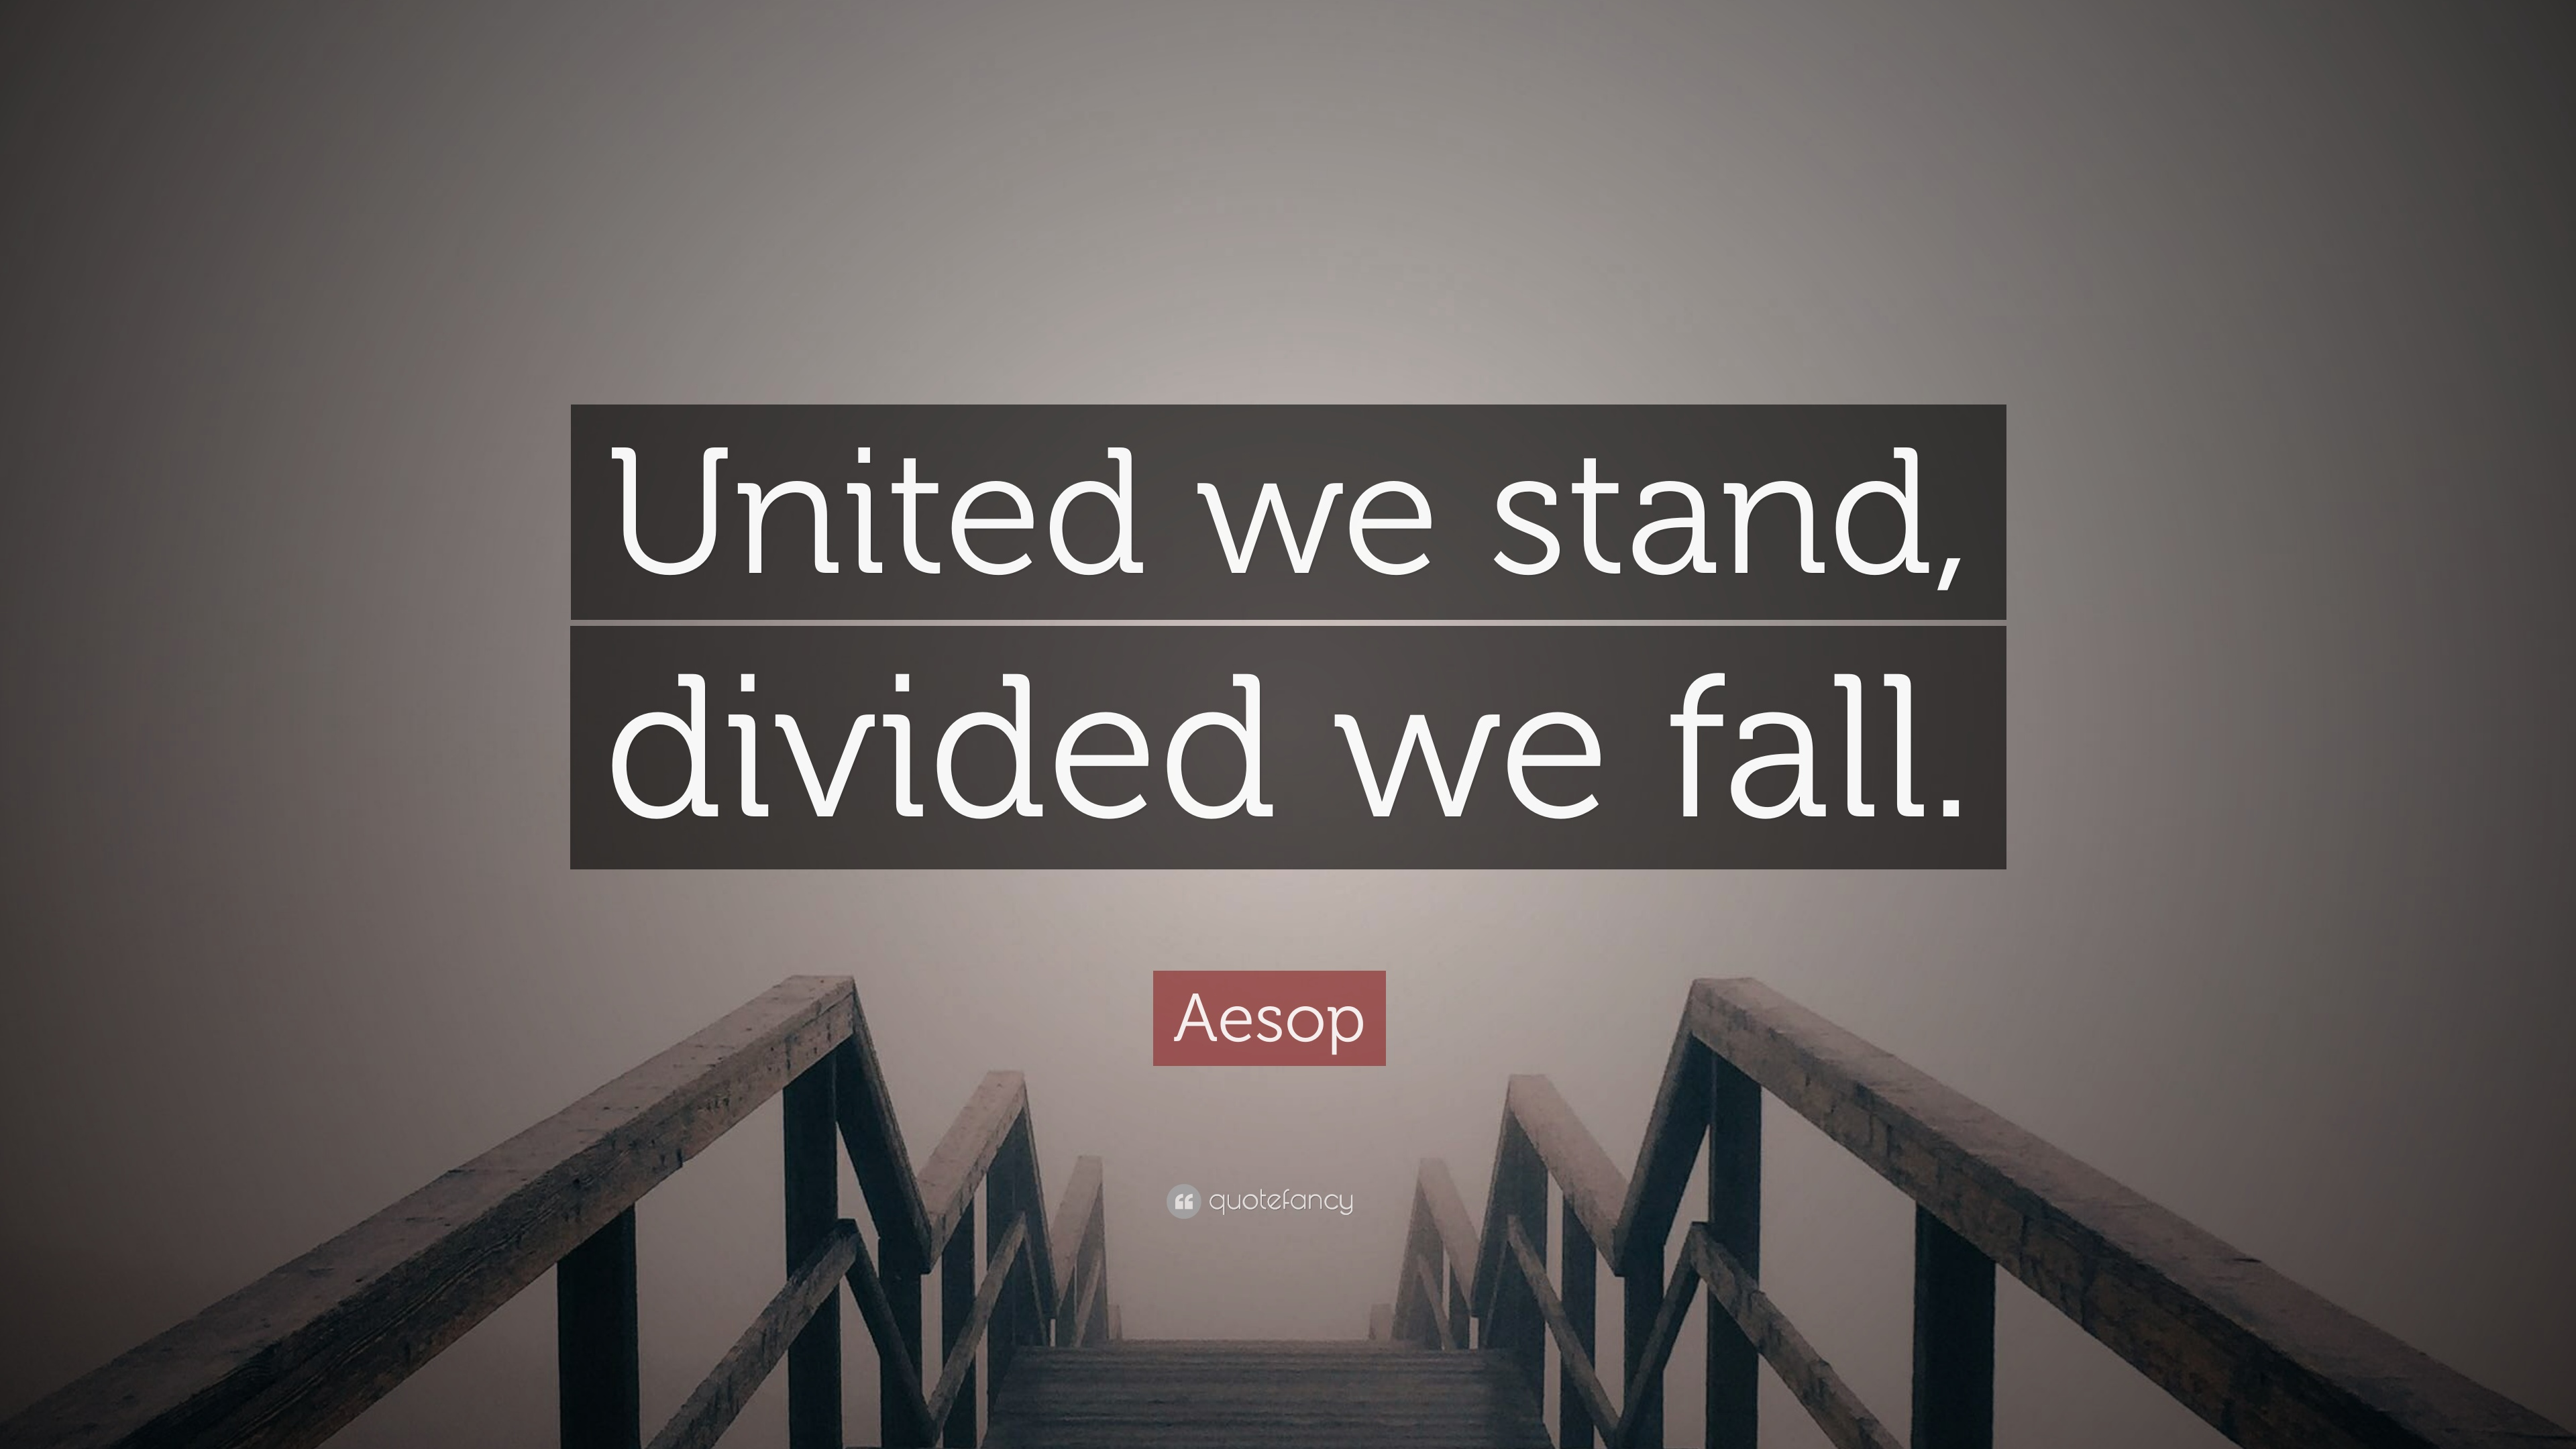 Inspiring Relationship Quotes Wallpaper Aesop Quote United We Stand Divided We Fall 12